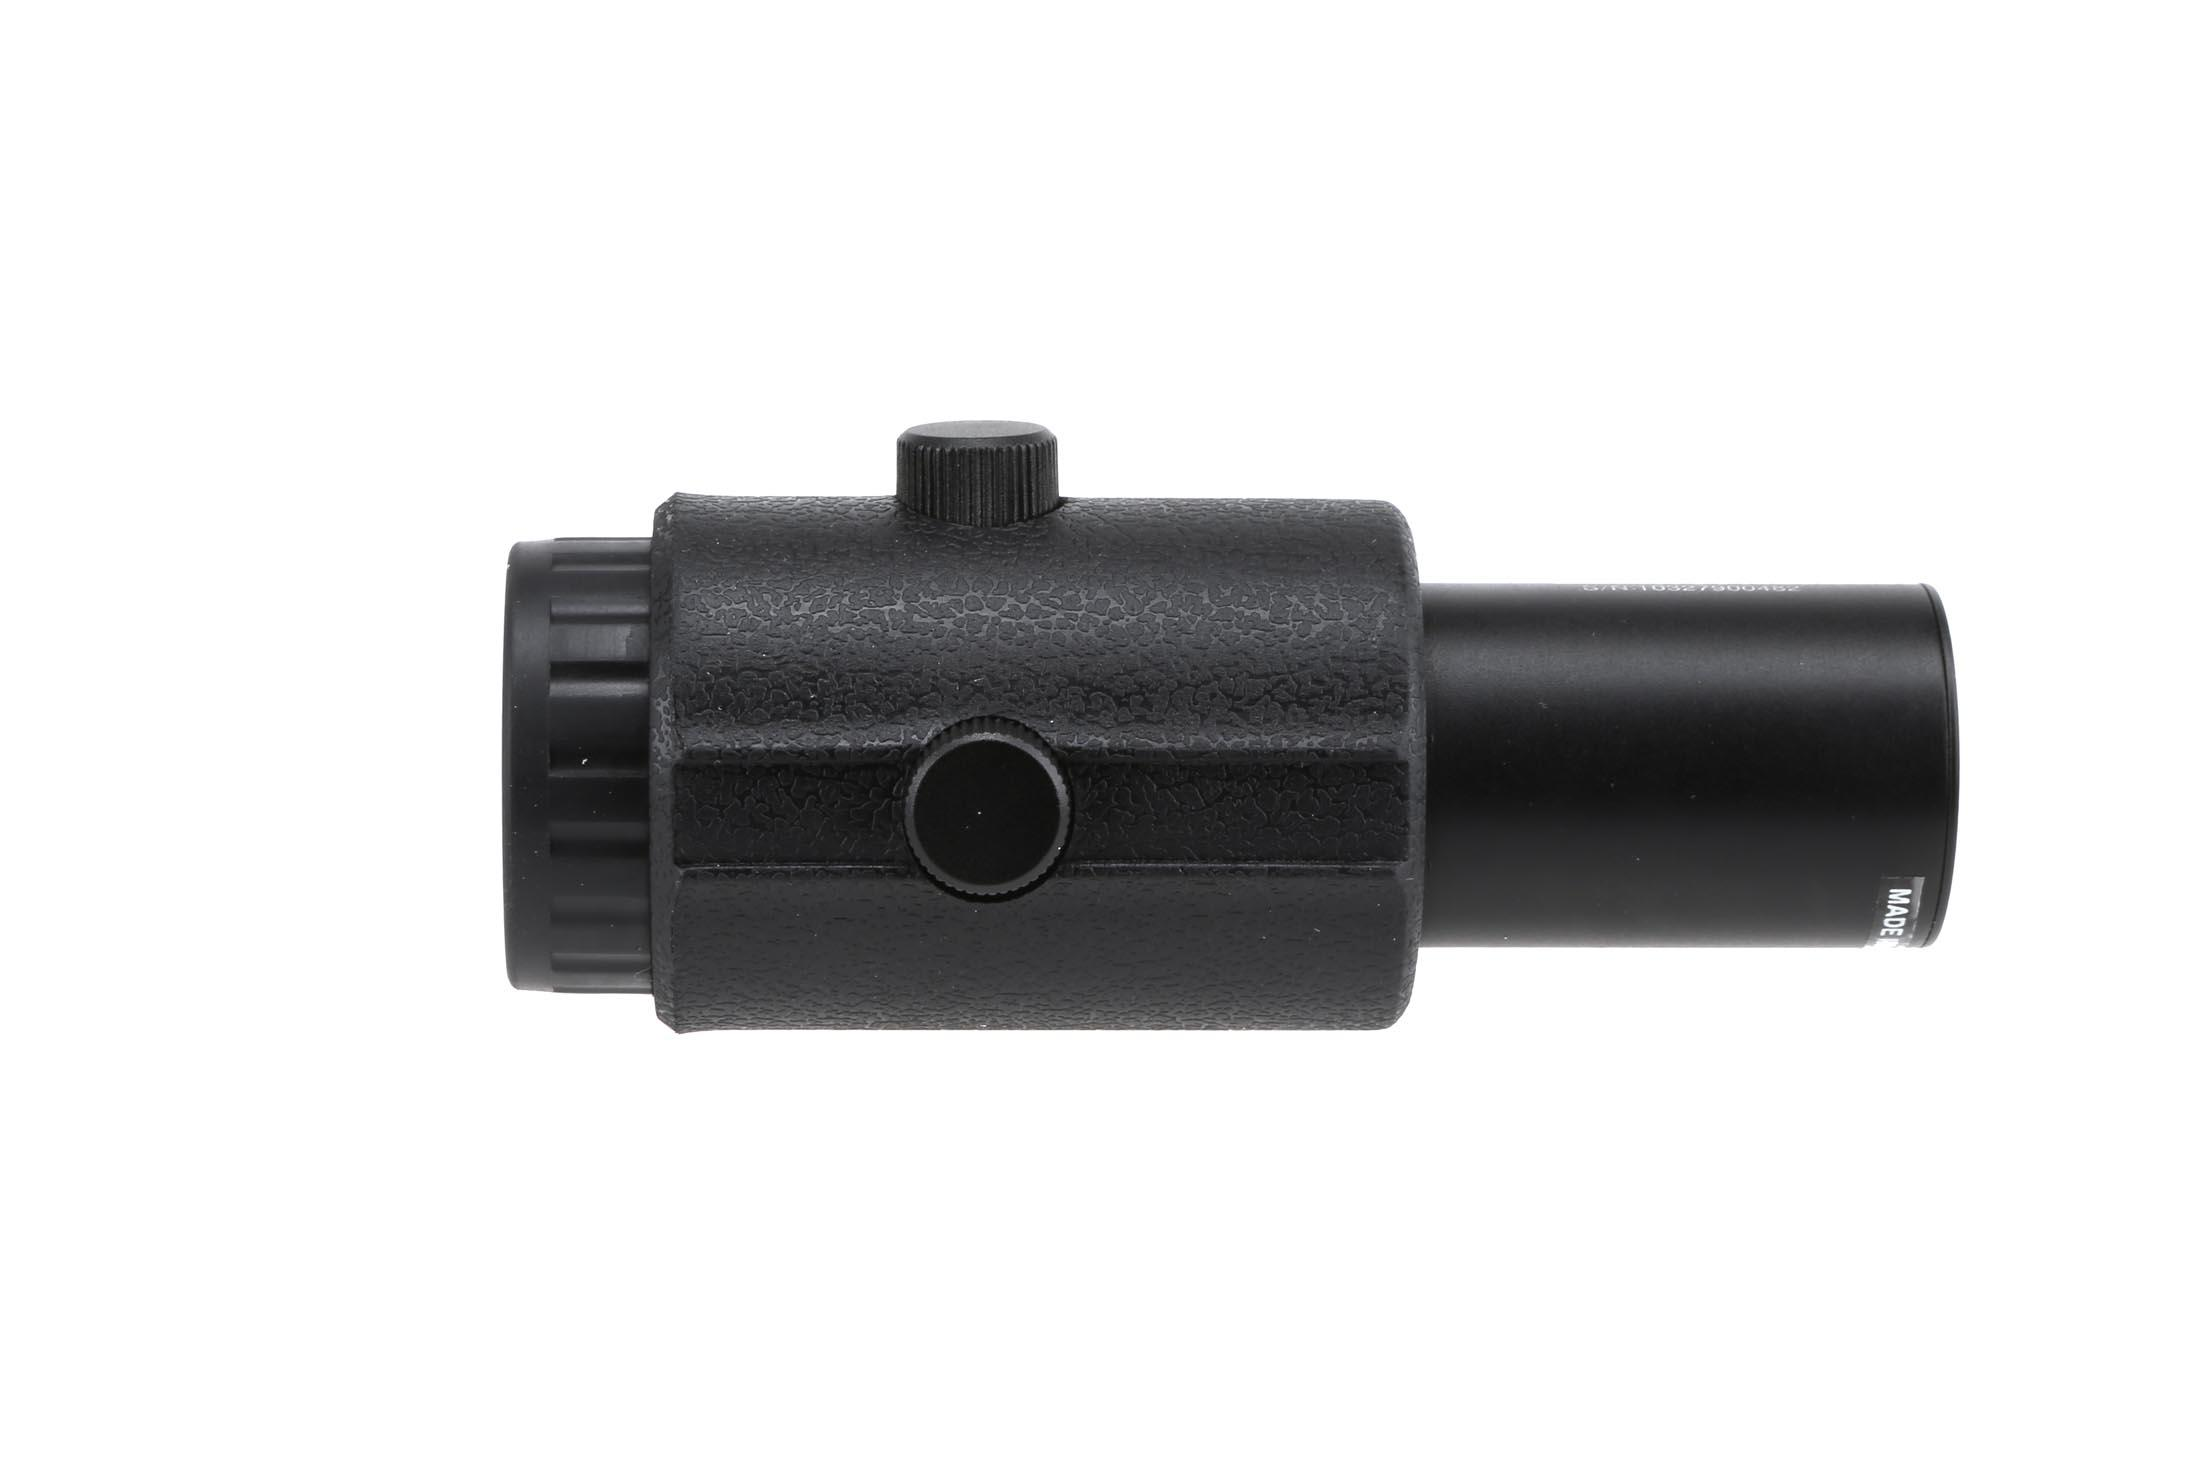 The Primary Arms Gen 4 Red Dot Magnifier LER features a fast focus eye piece